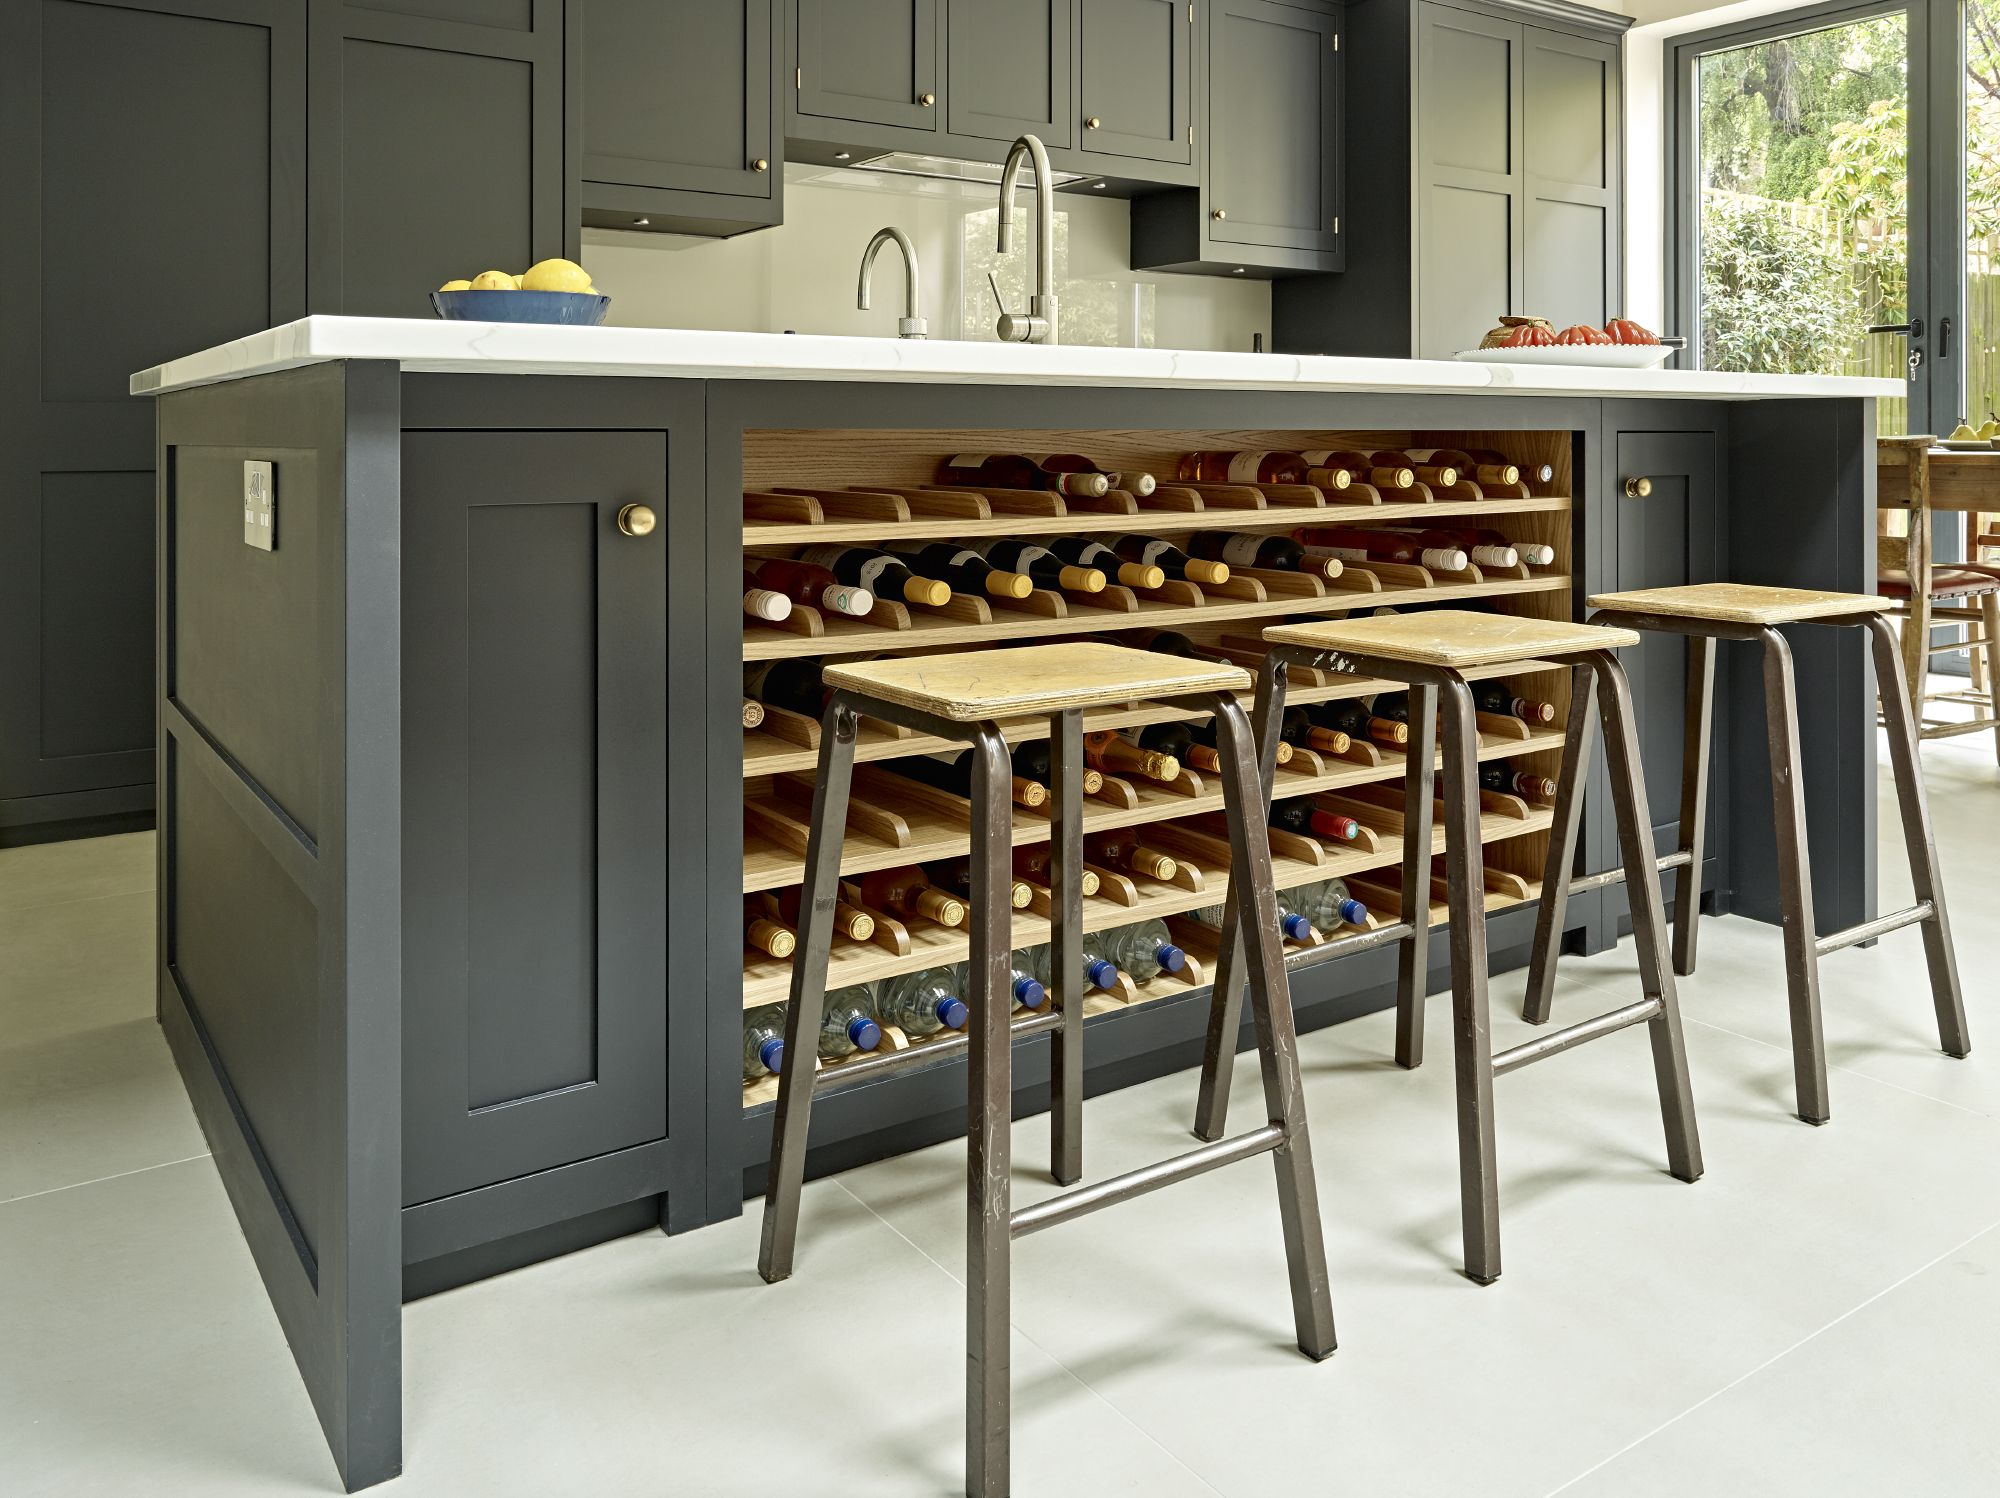 Grey Black Kitchen Island Design With Integrated Wine Rack In Oak Large Bespoke Breakfast Bar Seating And Calacatta Marble Effect Worktop